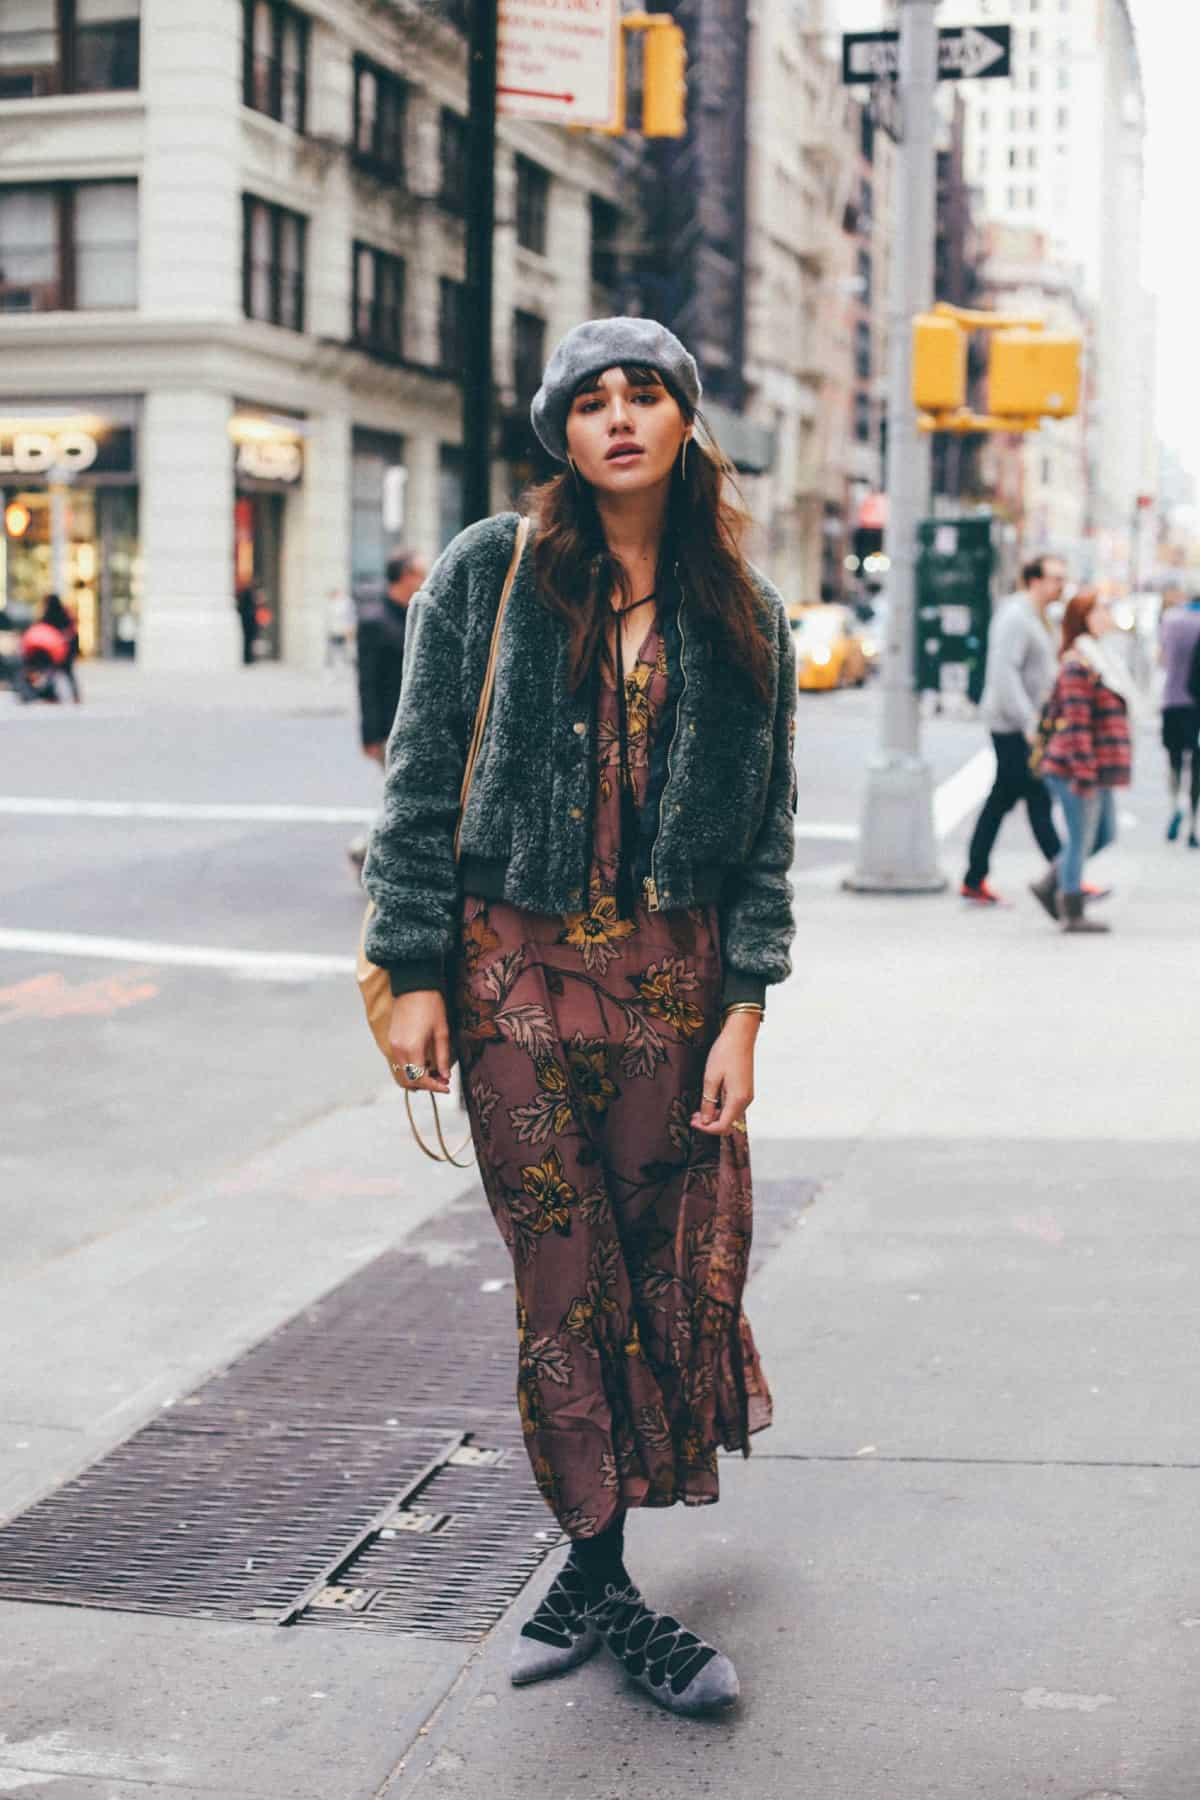 Fall floral prints and layer fall outfit